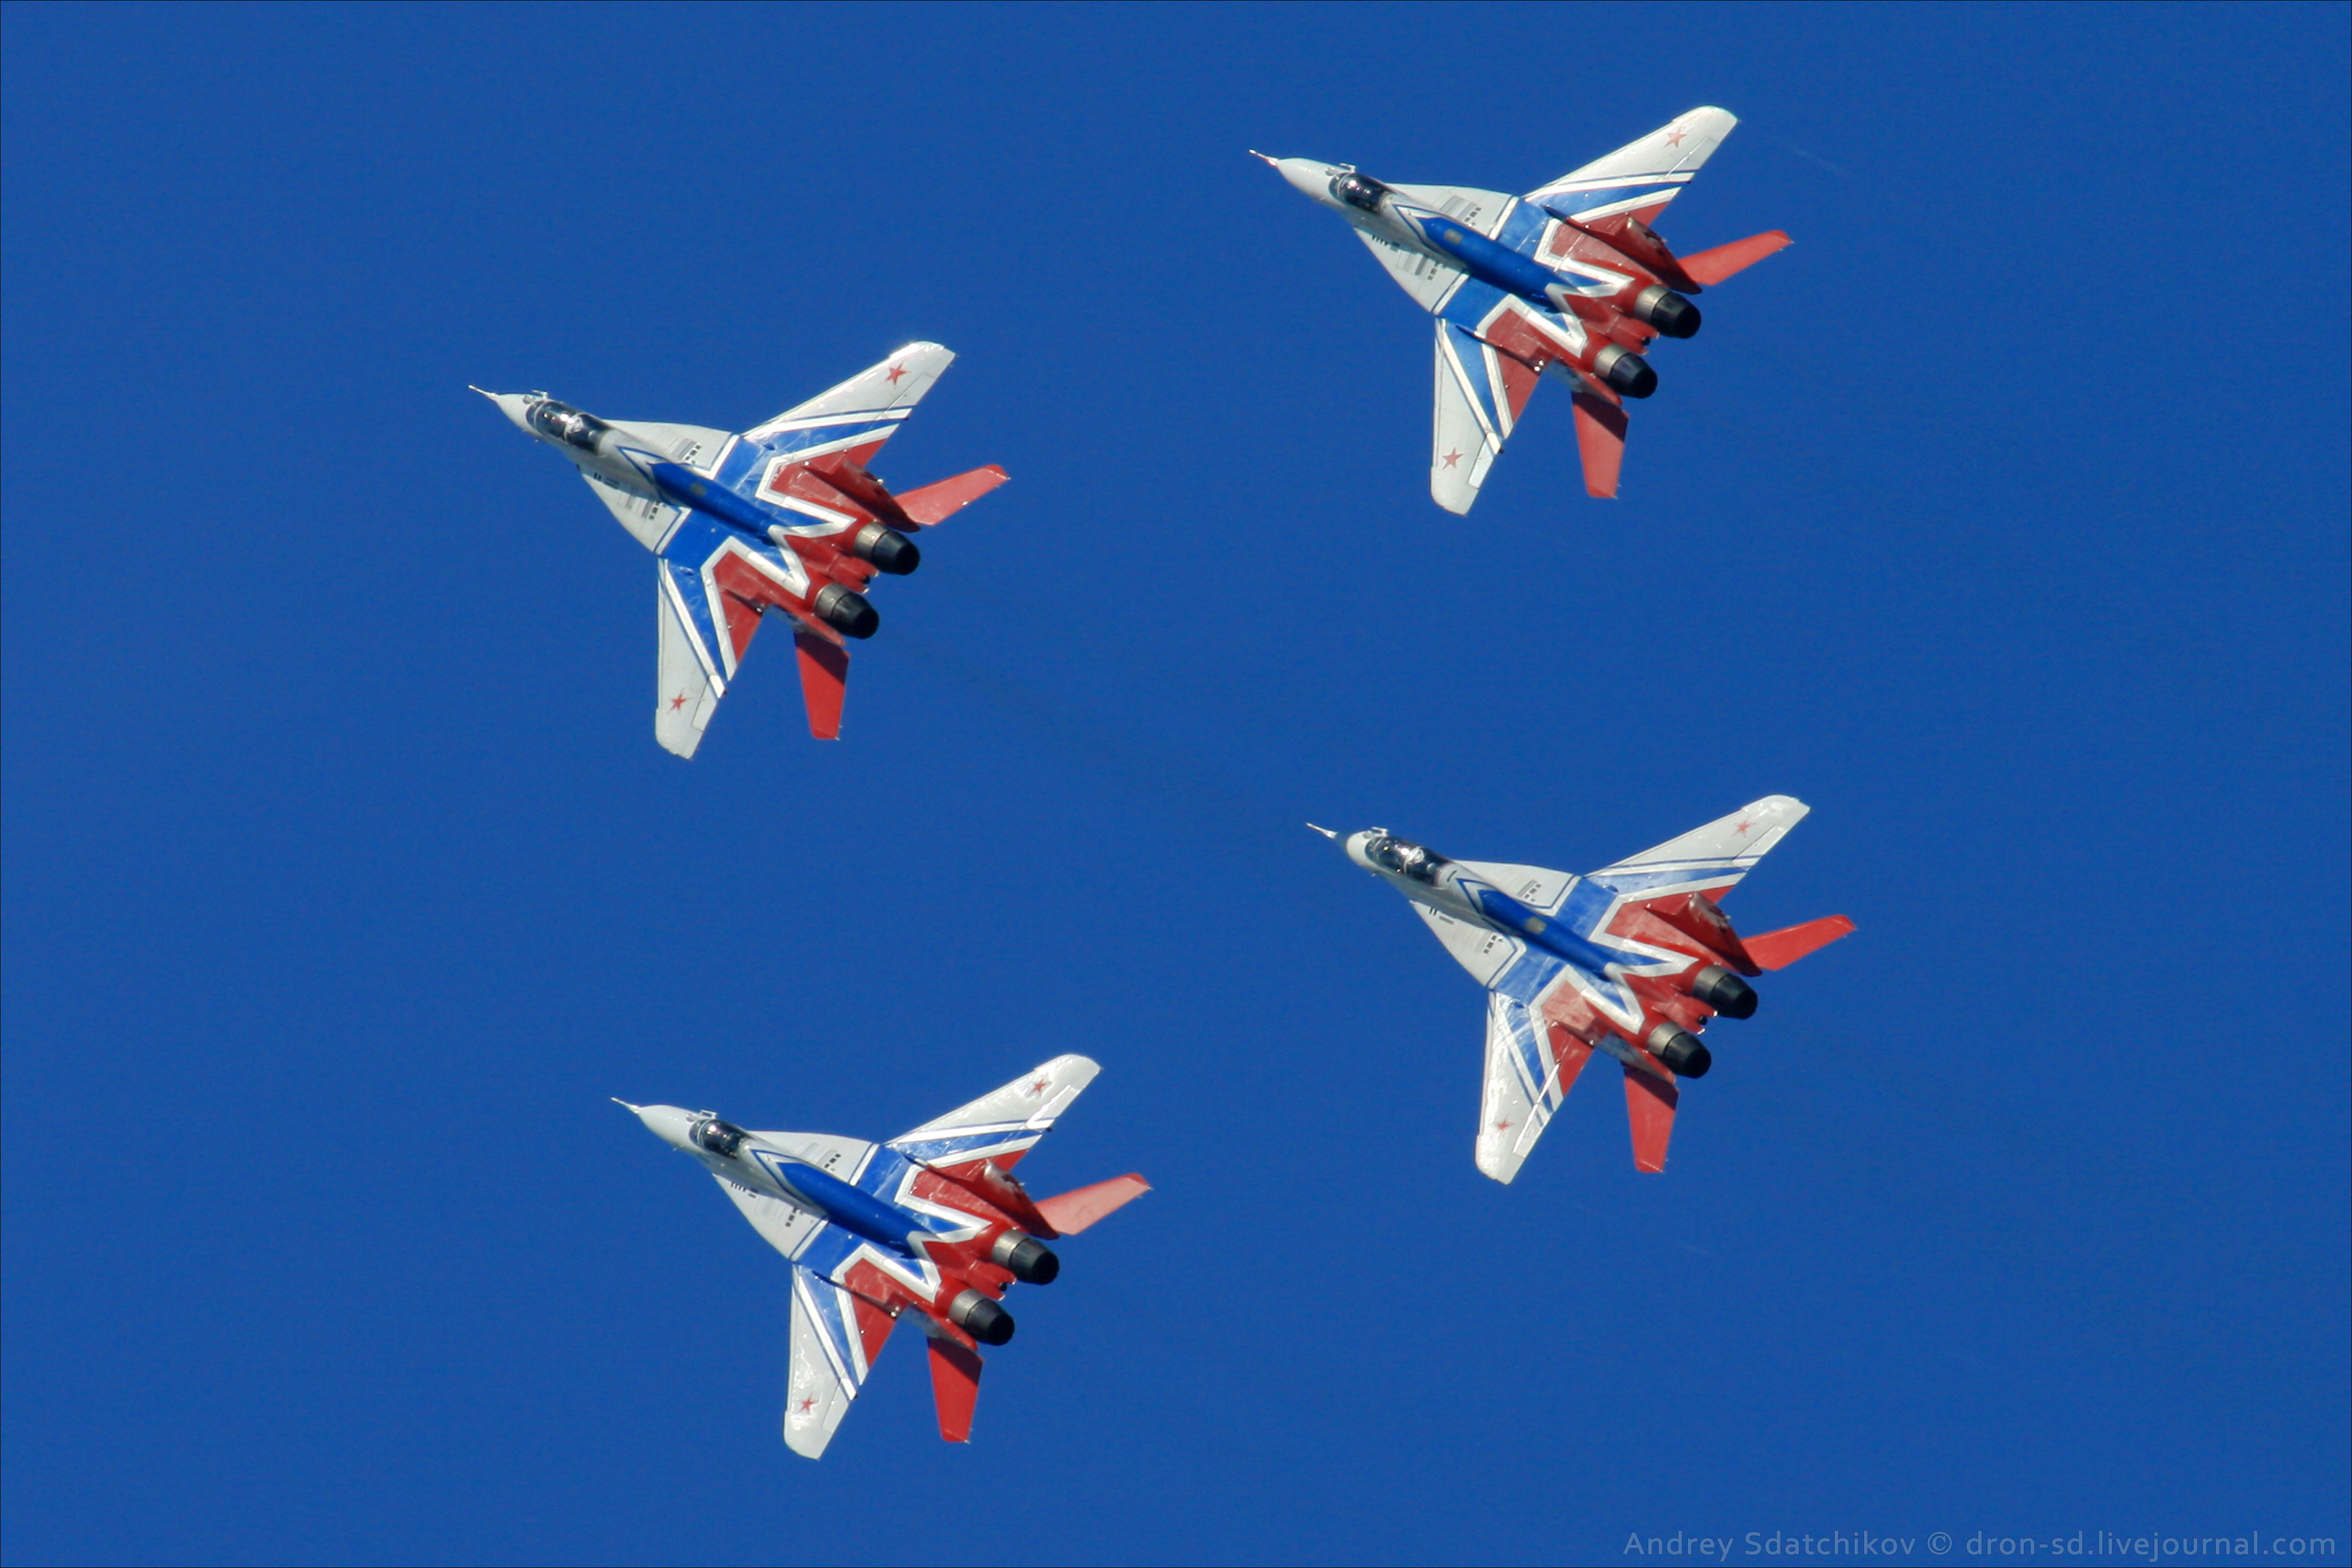 MAKS-2015 Air Show: Photos and Discussion - Page 3 0_1226a6_381f3835_orig